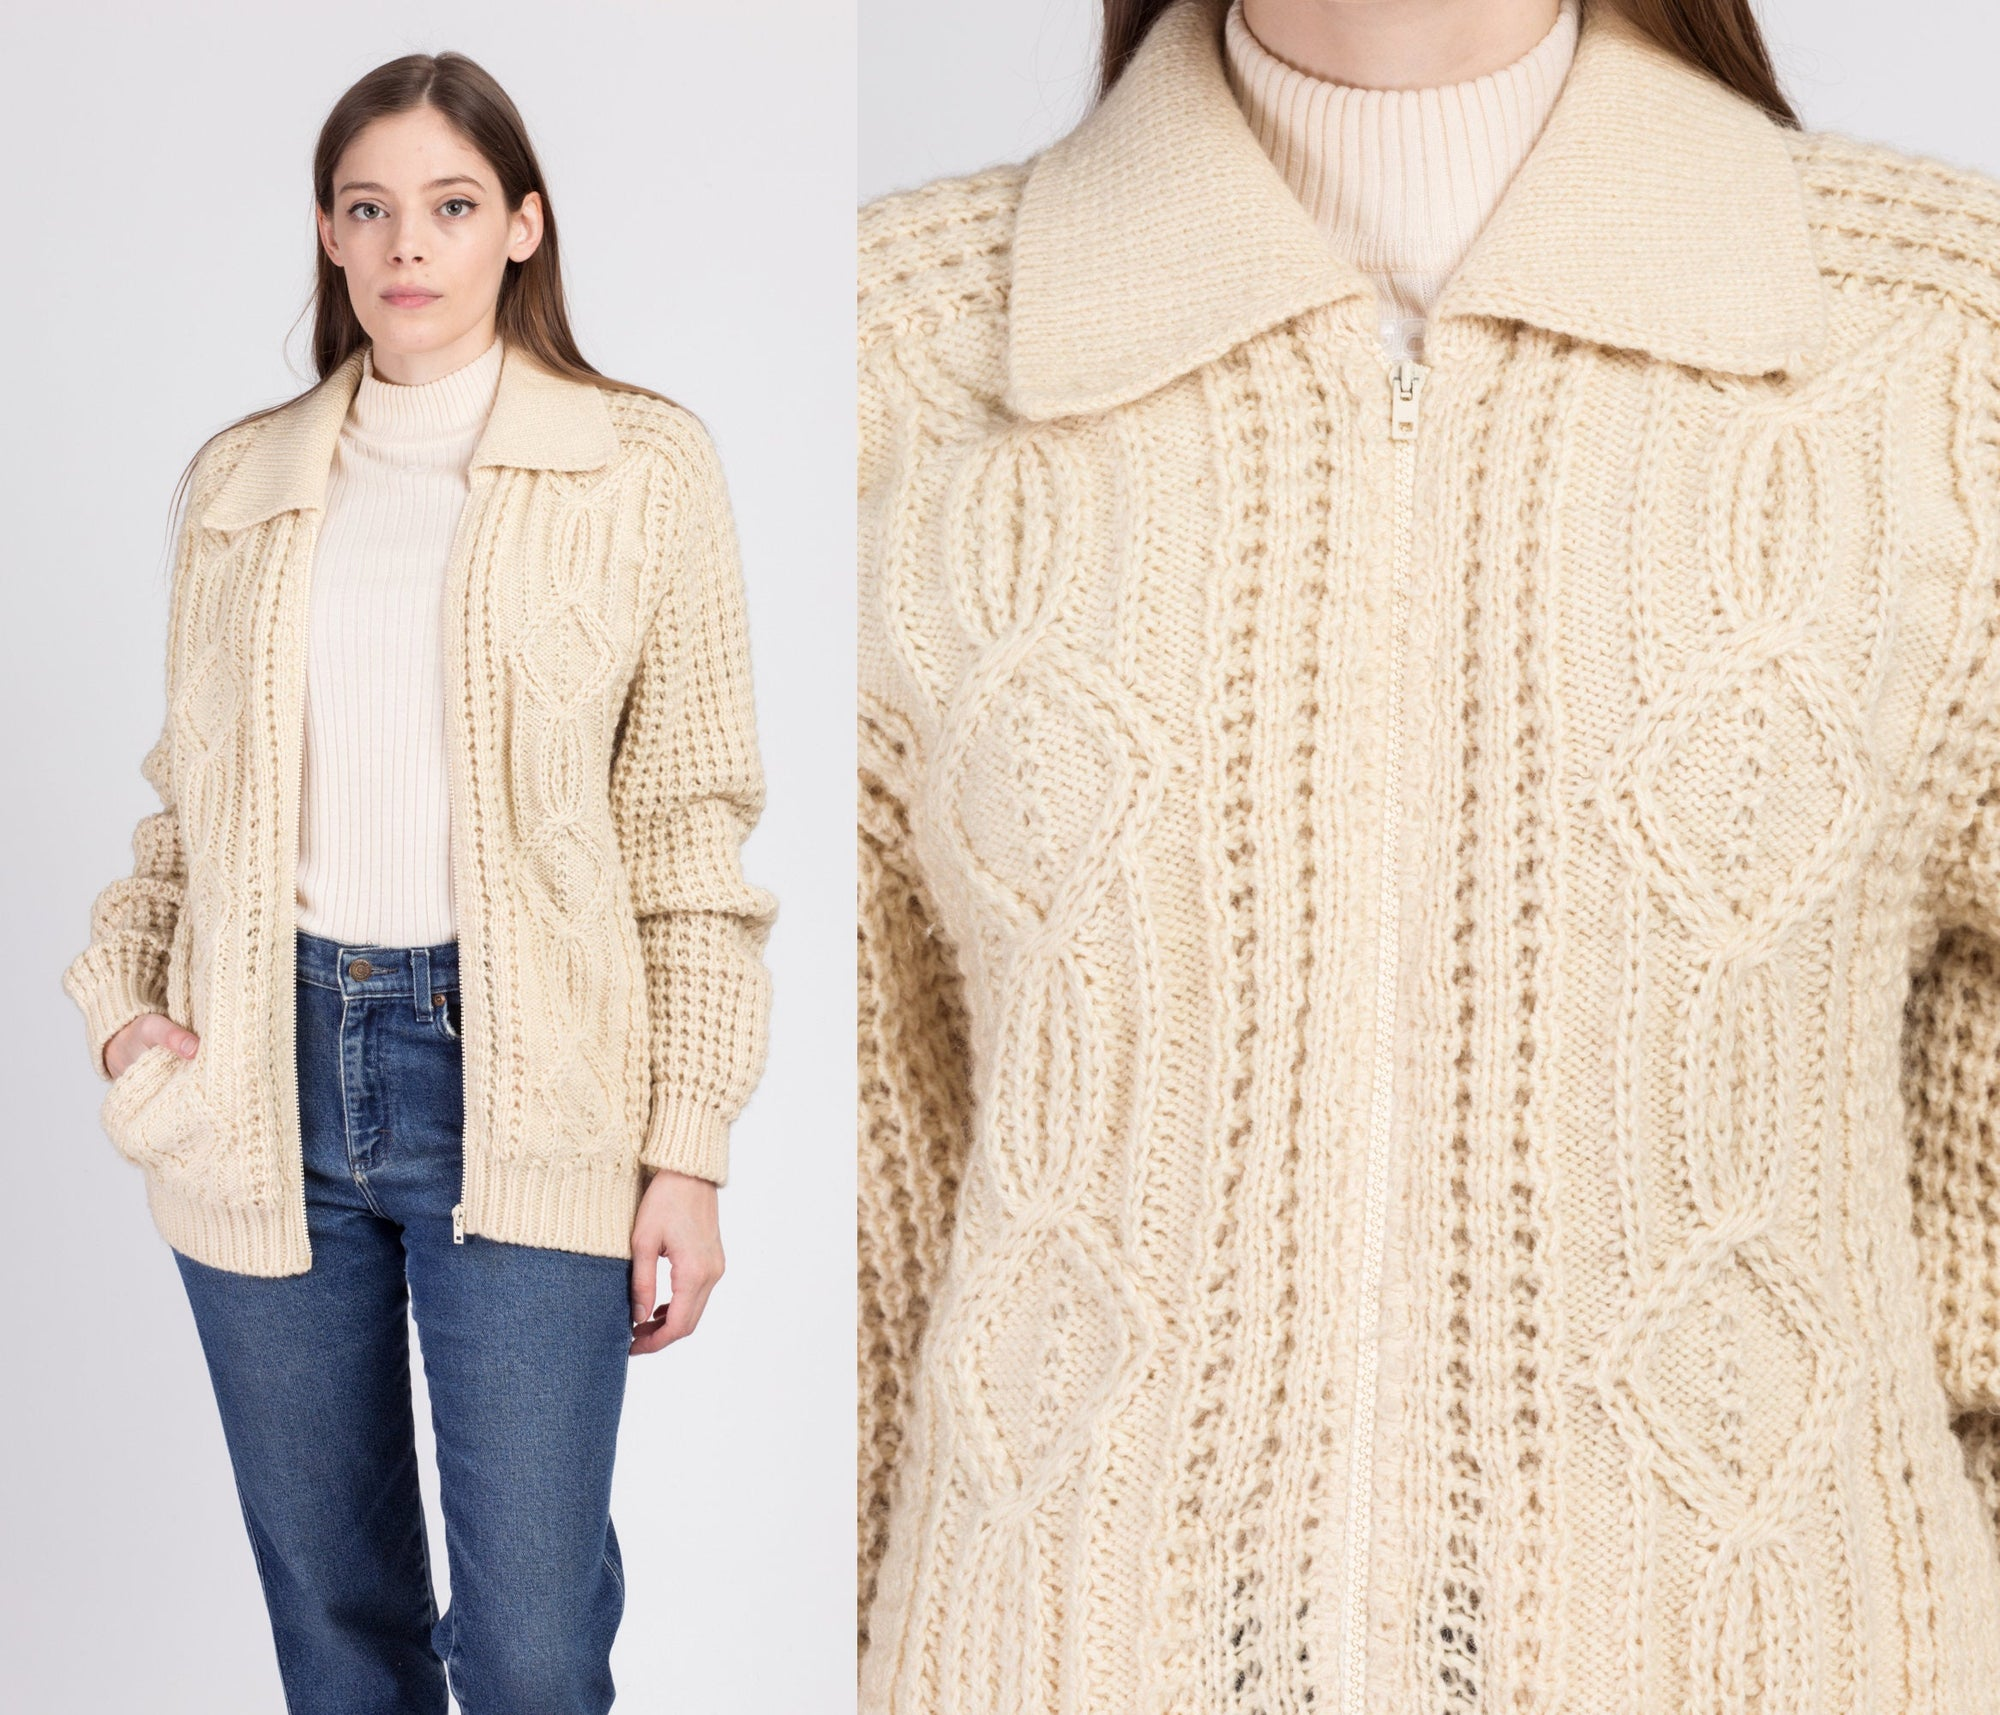 70s Irish Aran Cable Knit Fisherman Cardigan - Medium